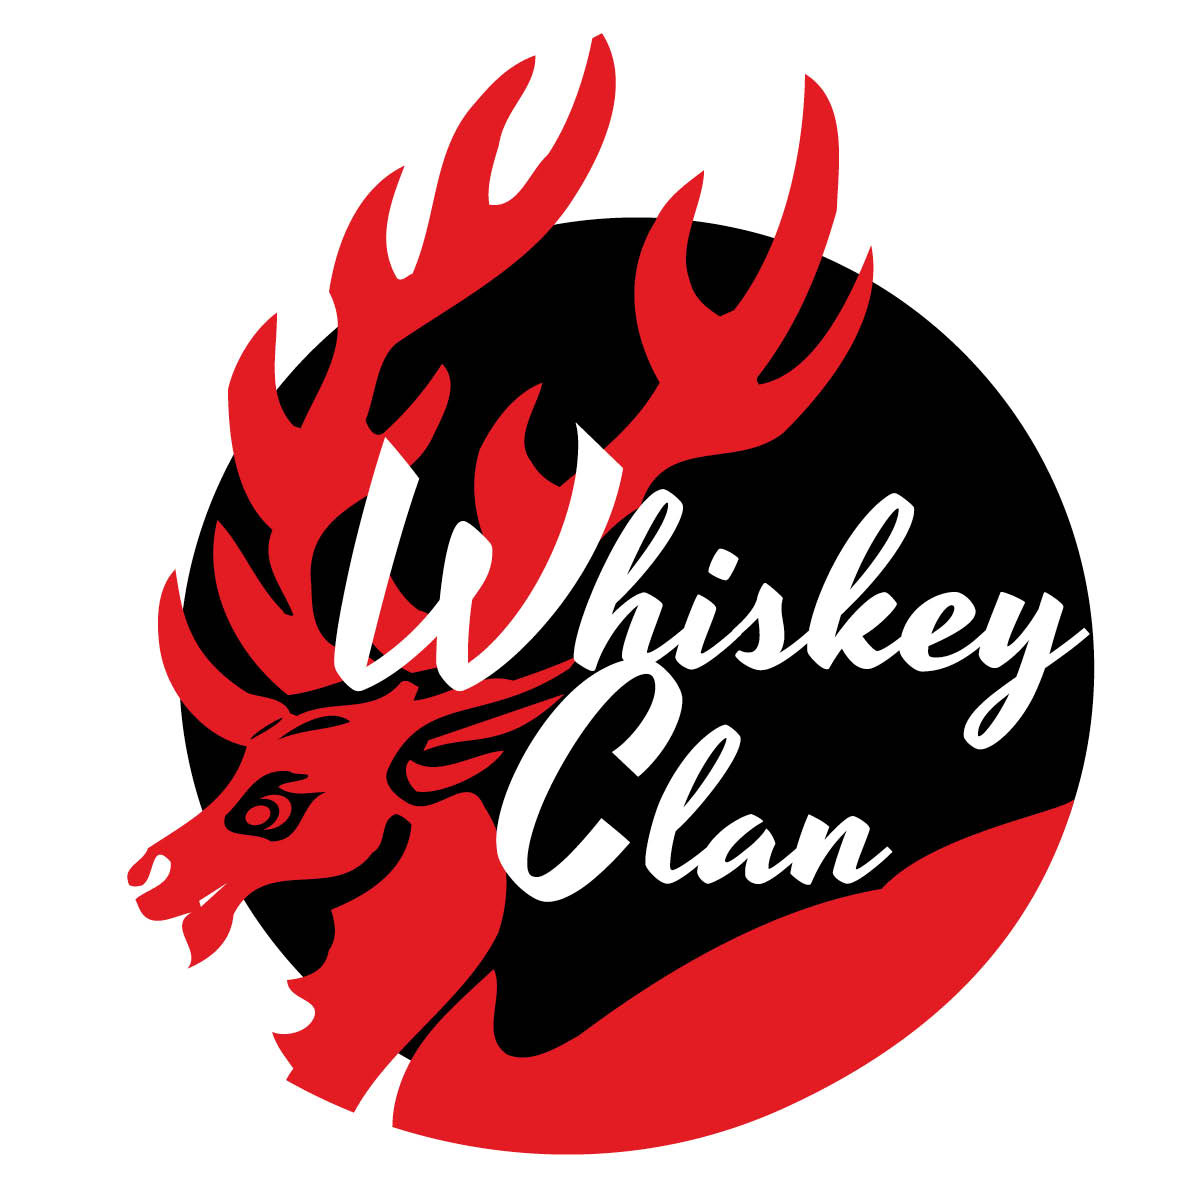 MCC_WHISKEY CLAN_LOGO BADGE_FINAL.jpg